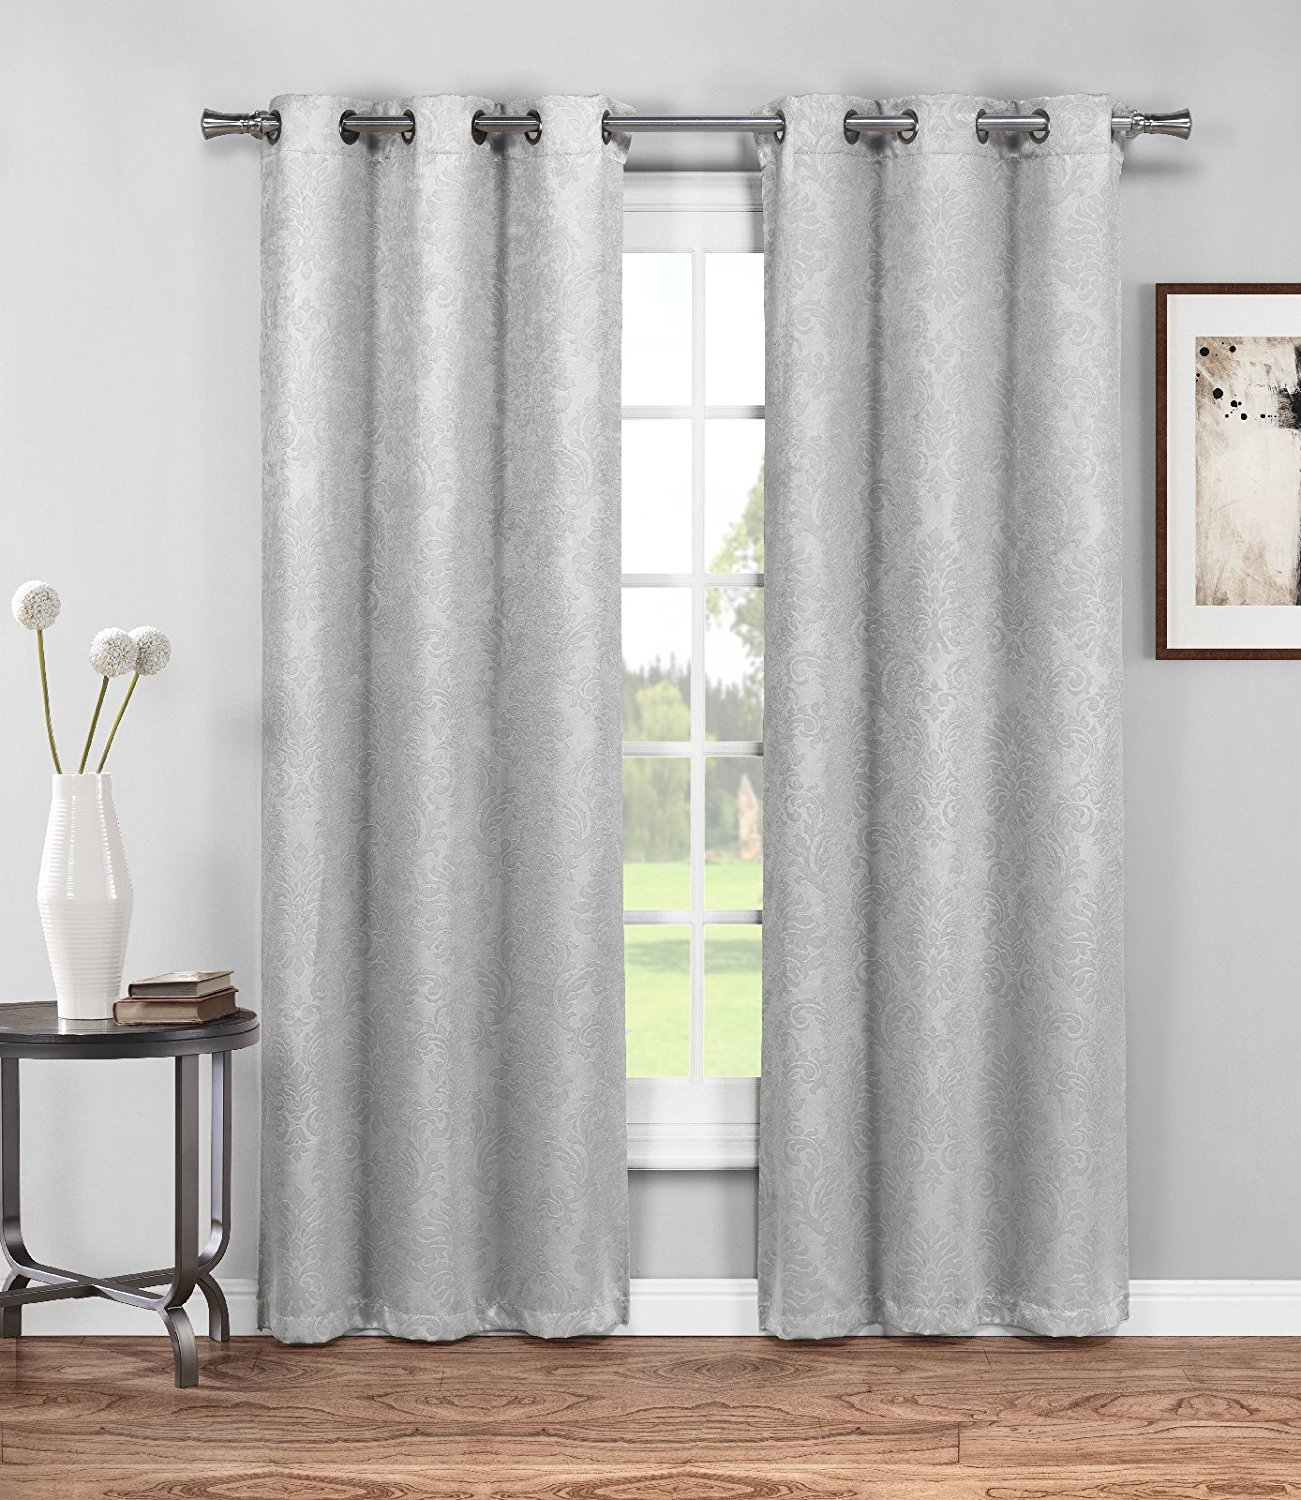 Cheap Embossed Curtain Fabric Blackout, Find Embossed Within Embossed Thermal Weaved Blackout Grommet Drapery Curtains (View 13 of 20)